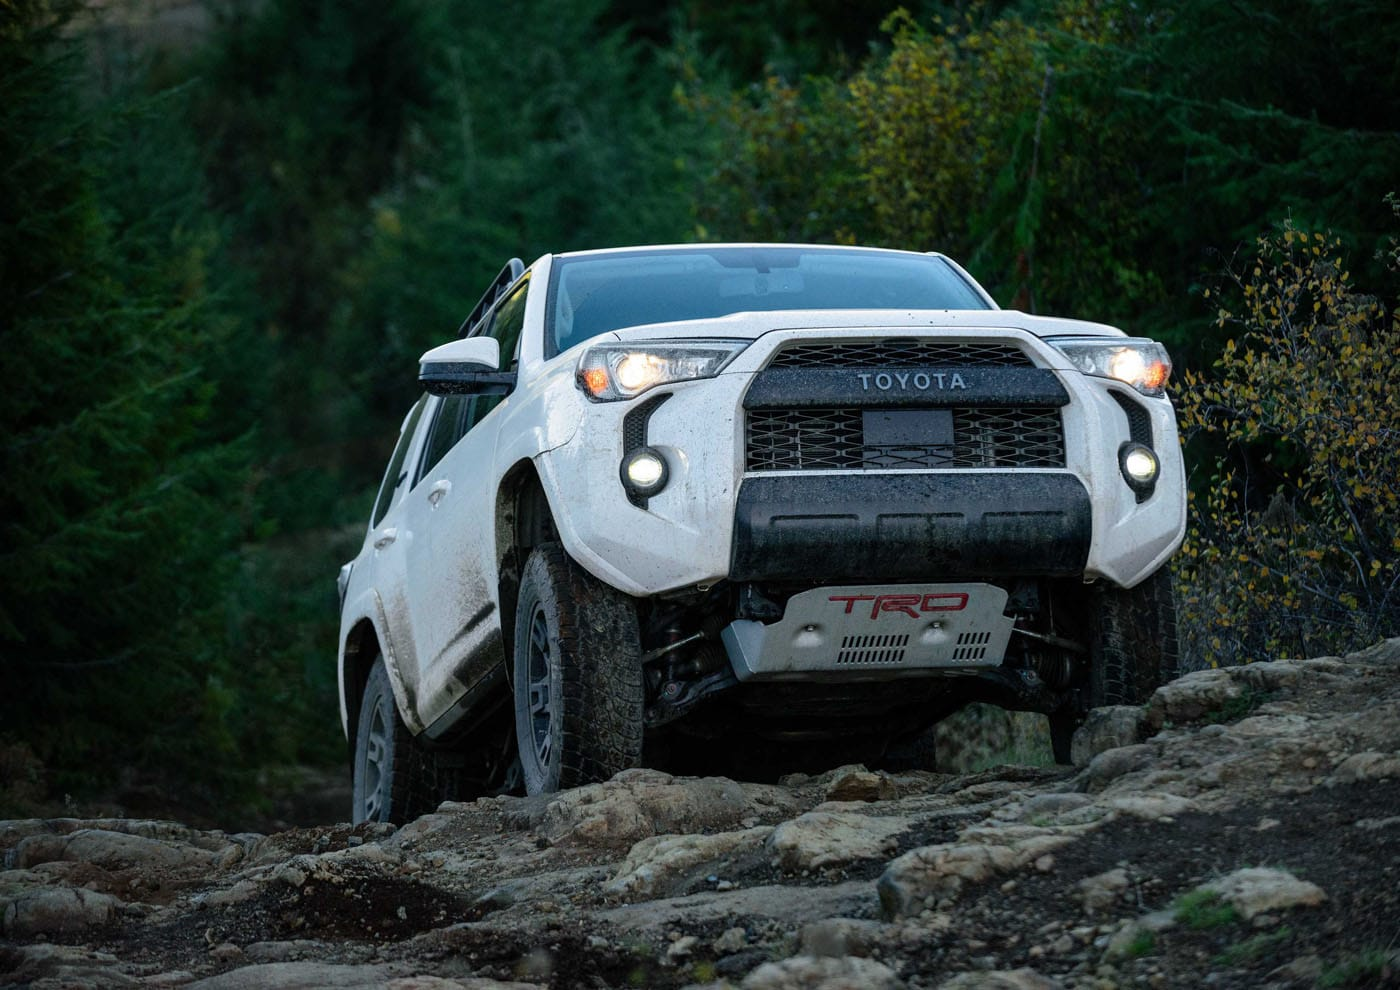 2020 4runner trd pro and sequoia trd pro also launch in chicago